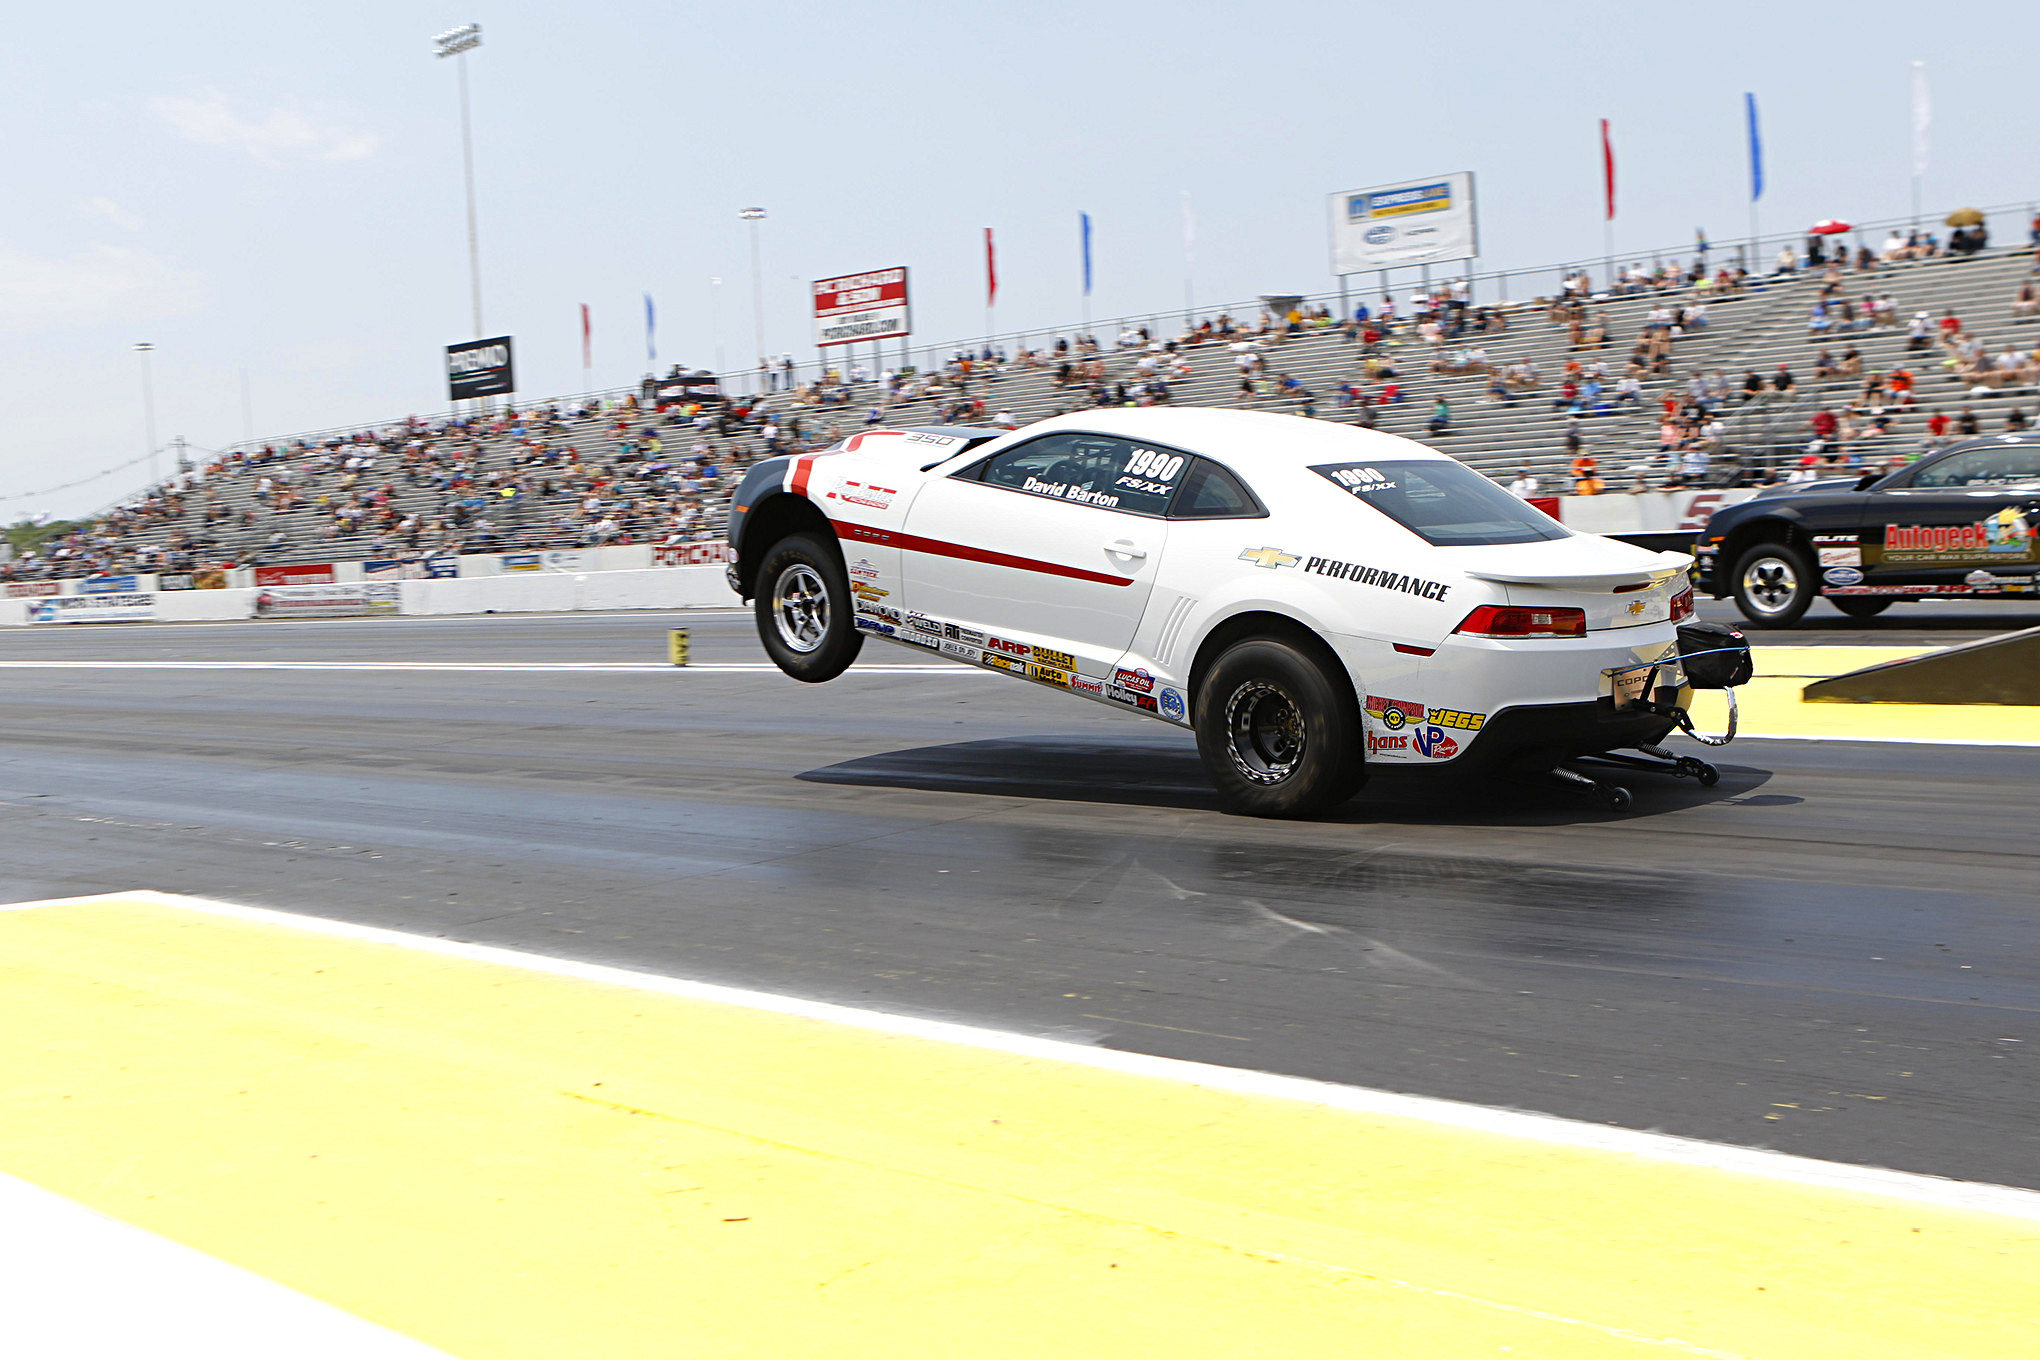 Barton was on a mission, running as quick as 8.25/165 during qualifying. This was the quickest and fastest pass ever recorded by a NHRA Stock Eliminator car. Keep in mind this was done on 9-inch tires!